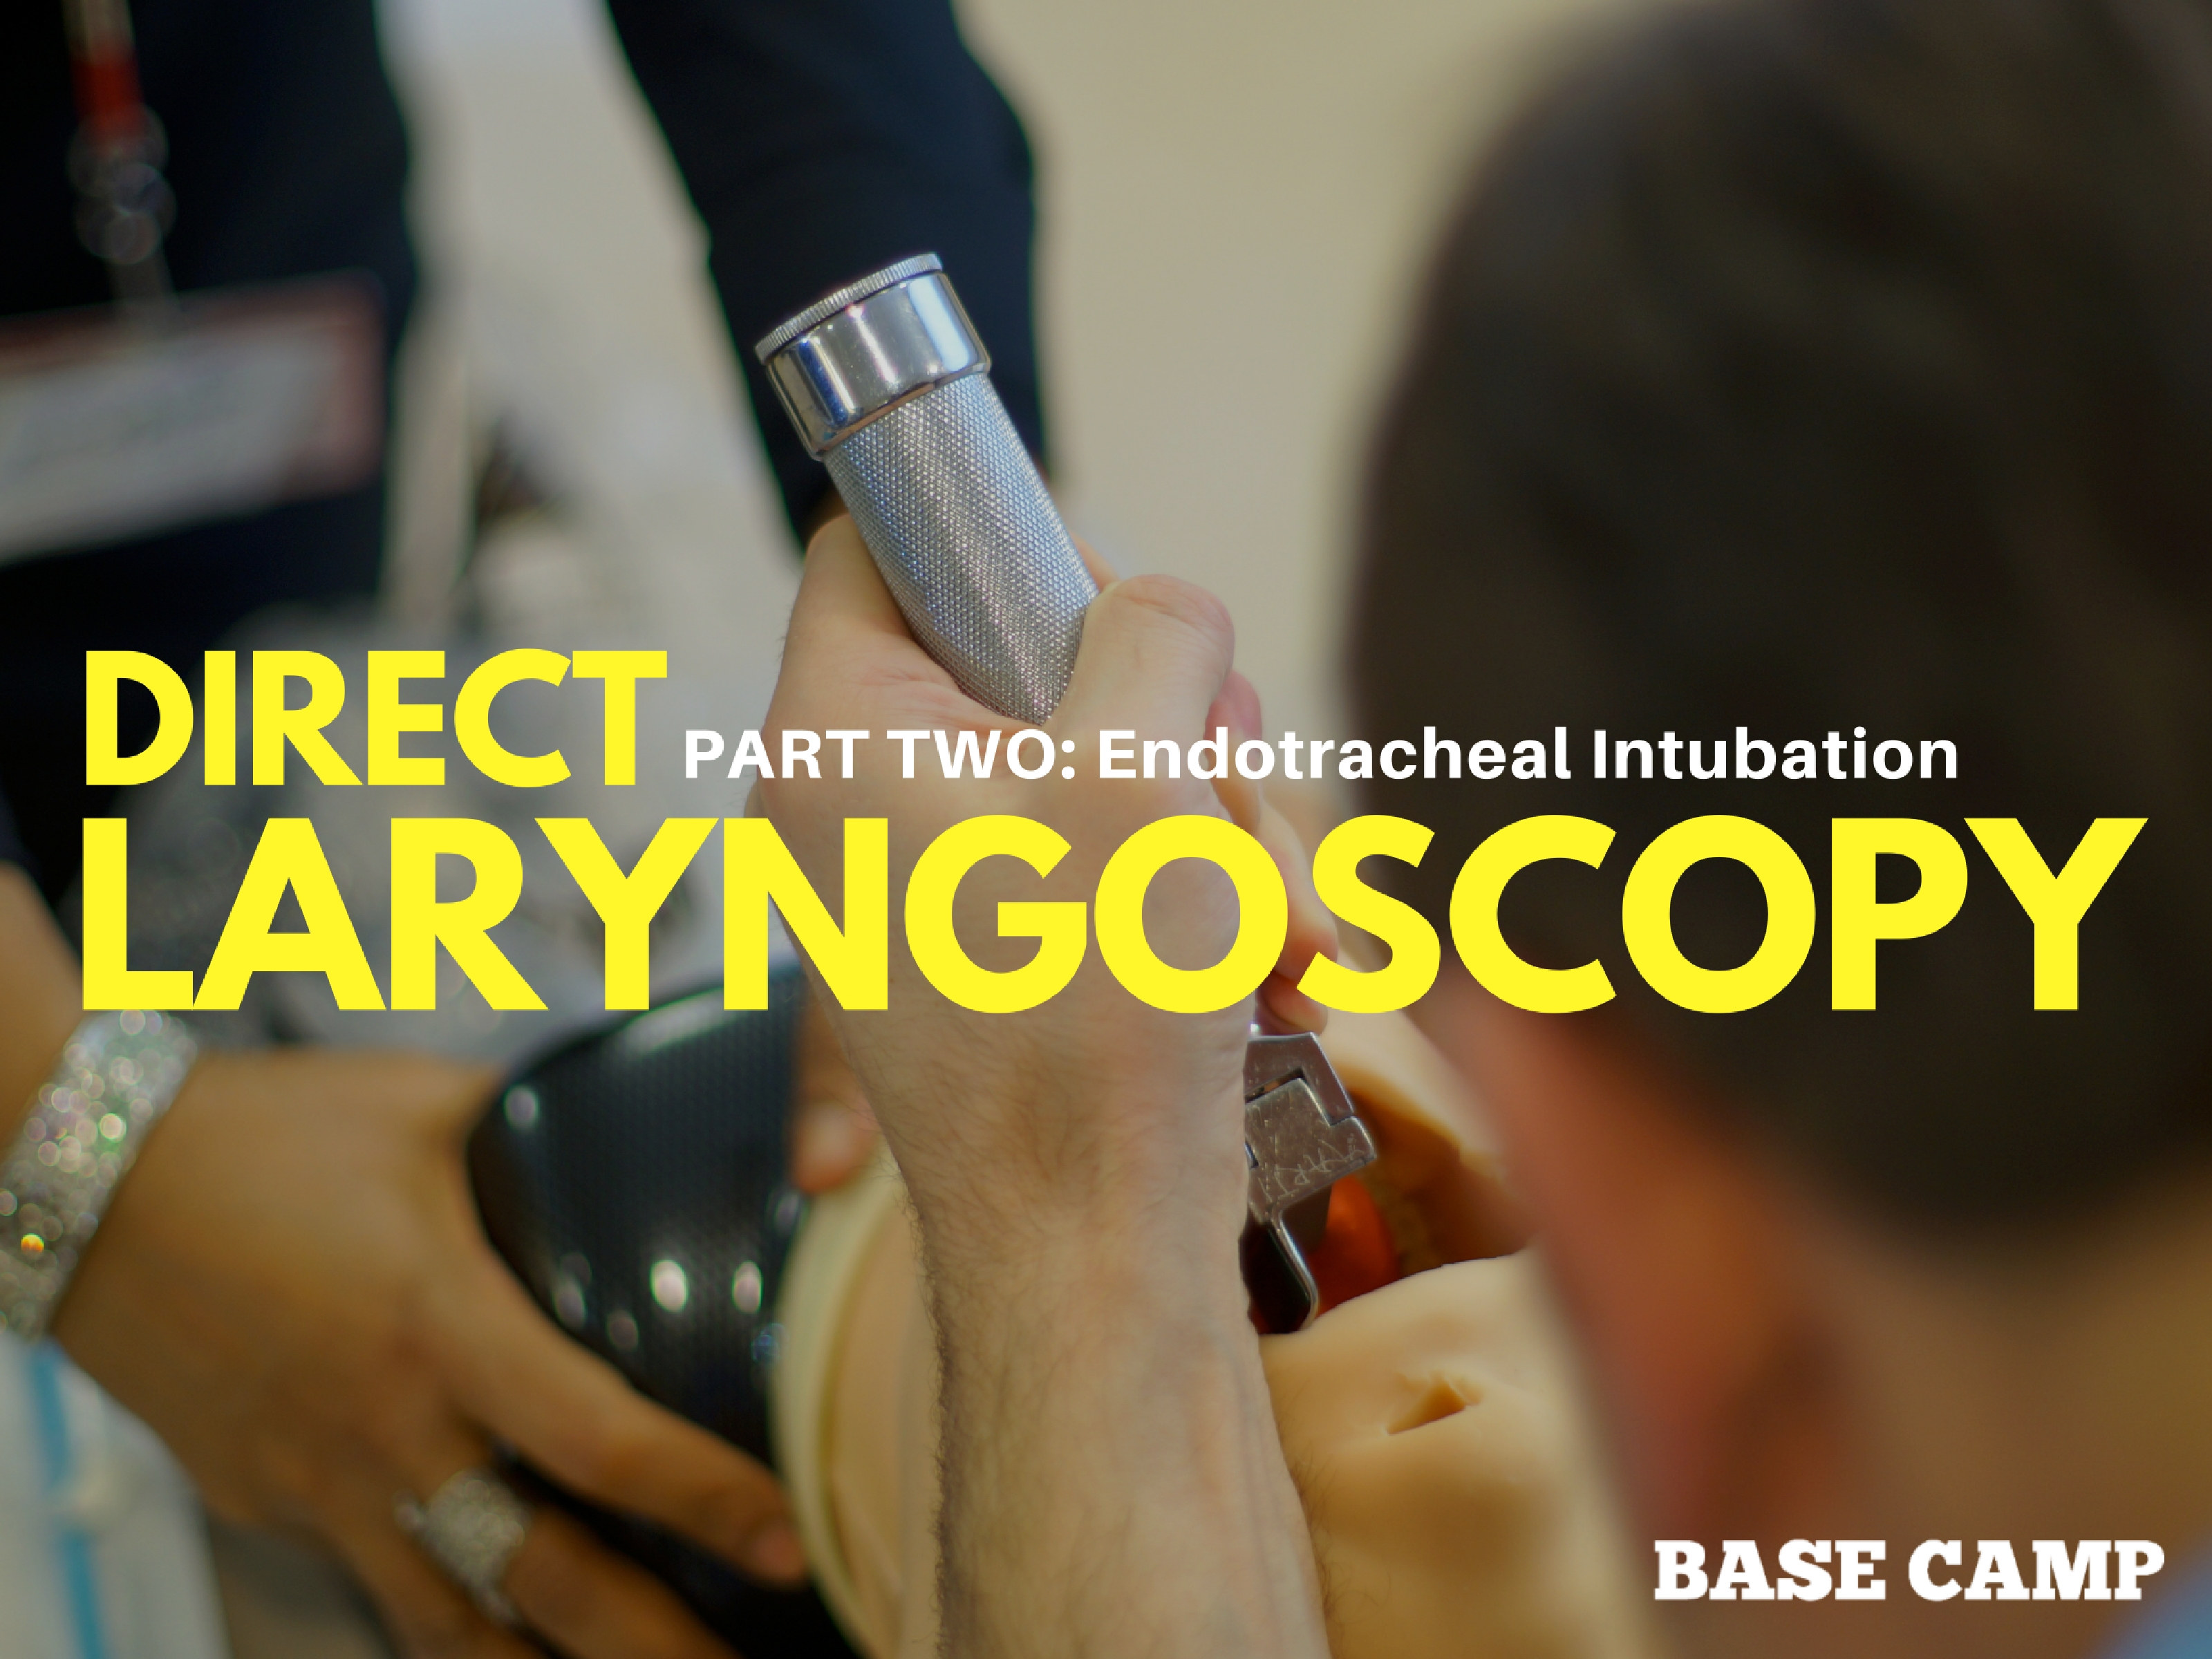 Direct Laryngoscopy 2